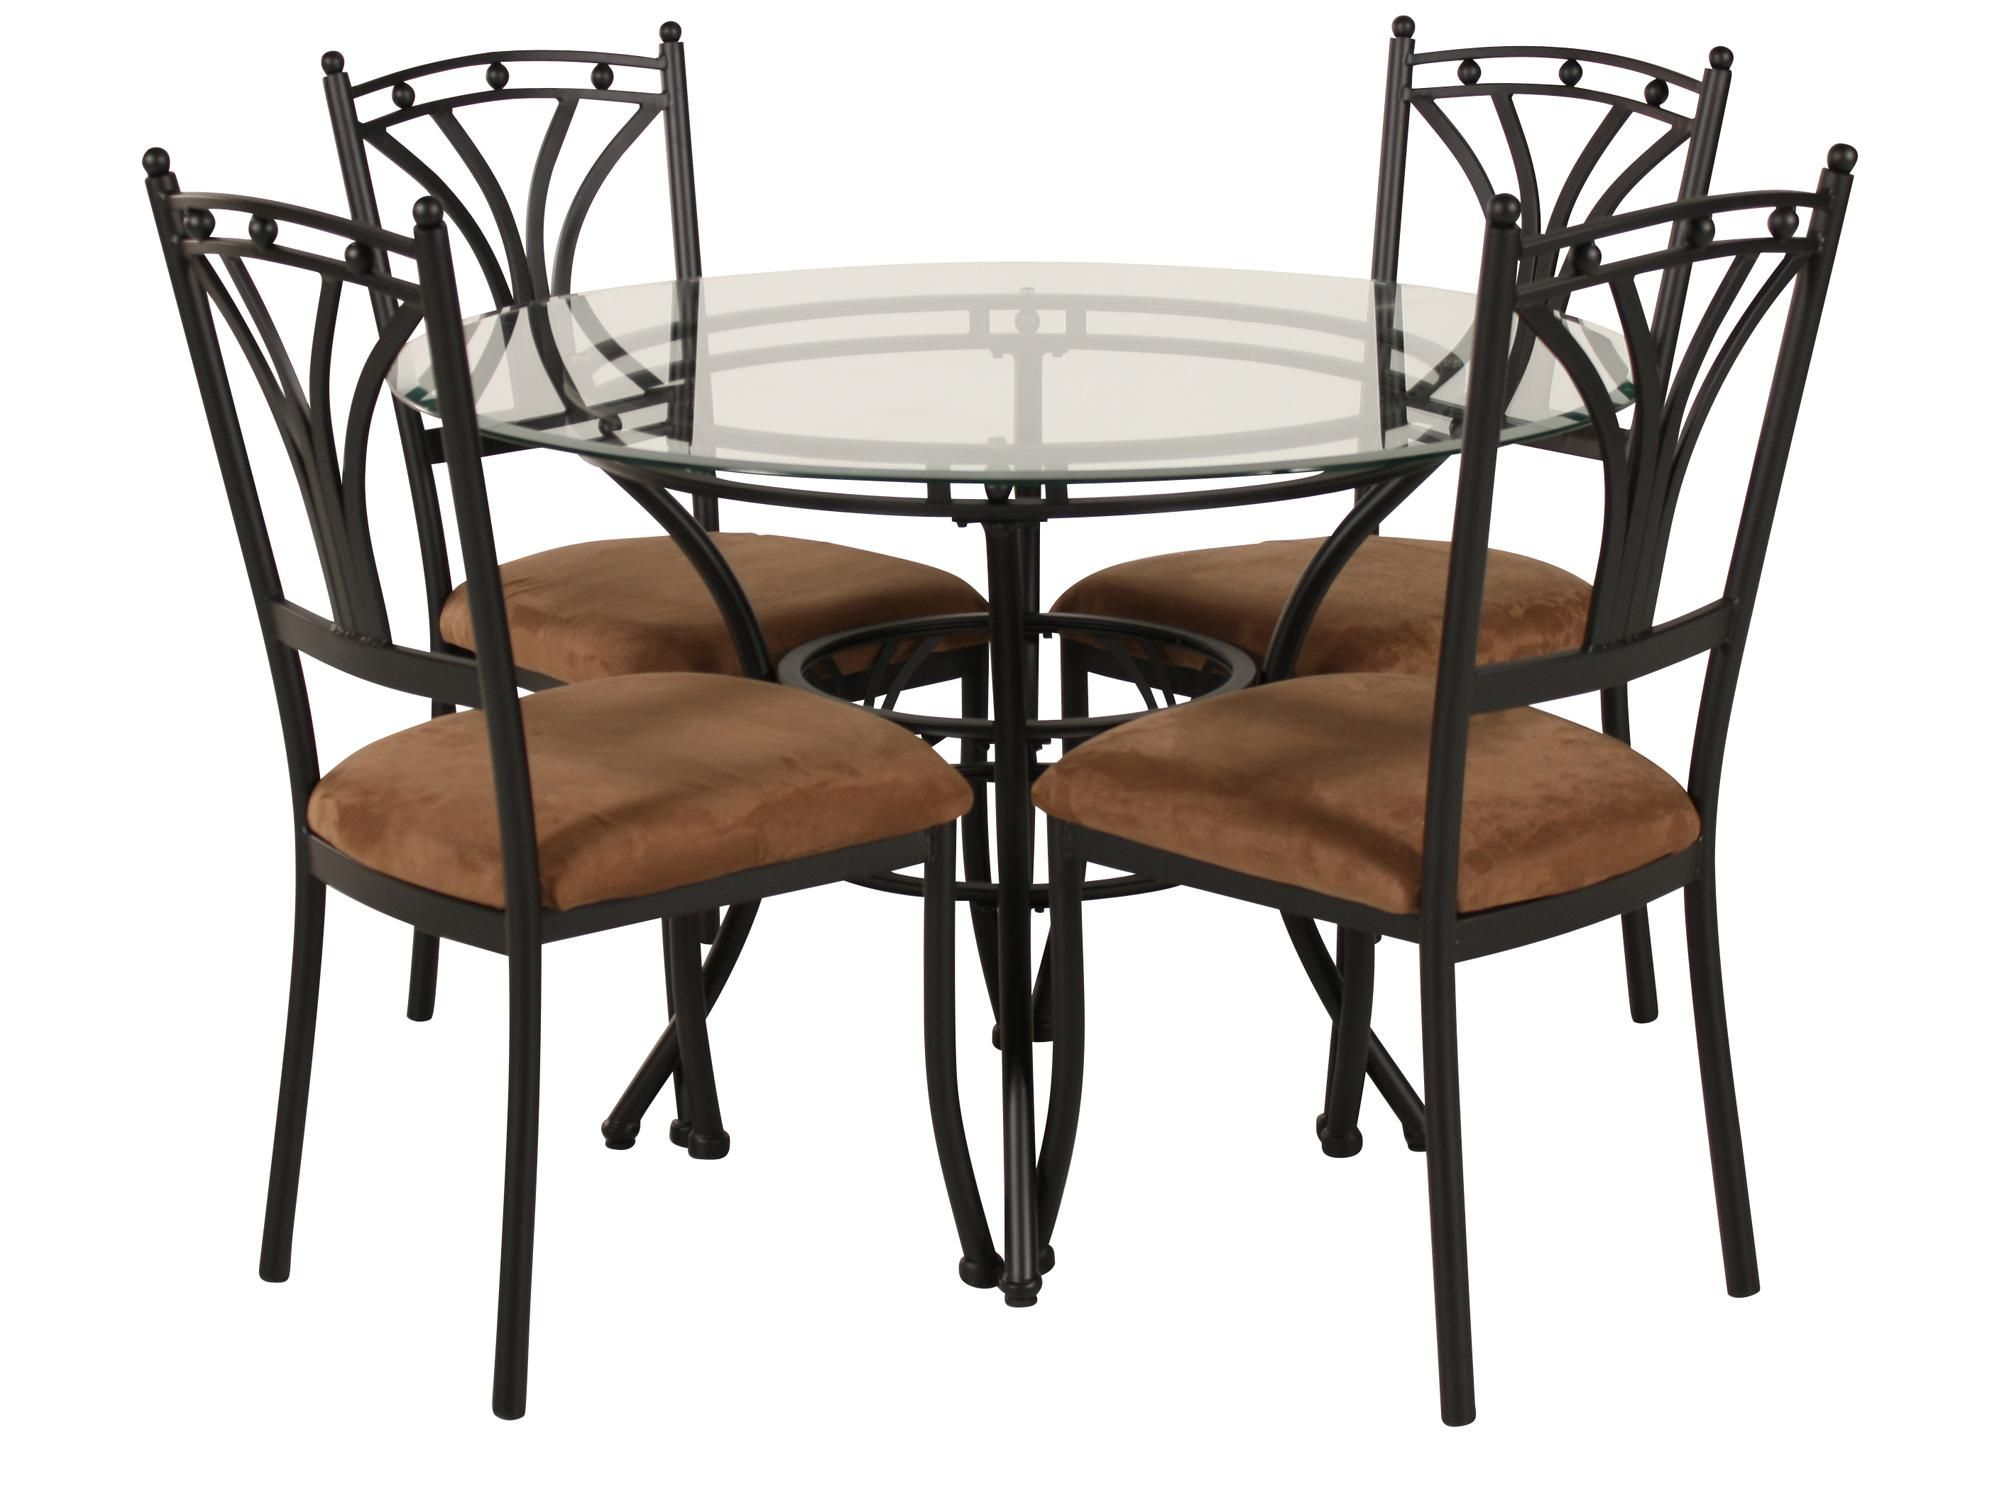 Very Affordable! Kitchen Table At Mathis Brothers Indio | Furniture Within 2017 Casiano 5 Piece Dining Sets (Photo 16 of 20)